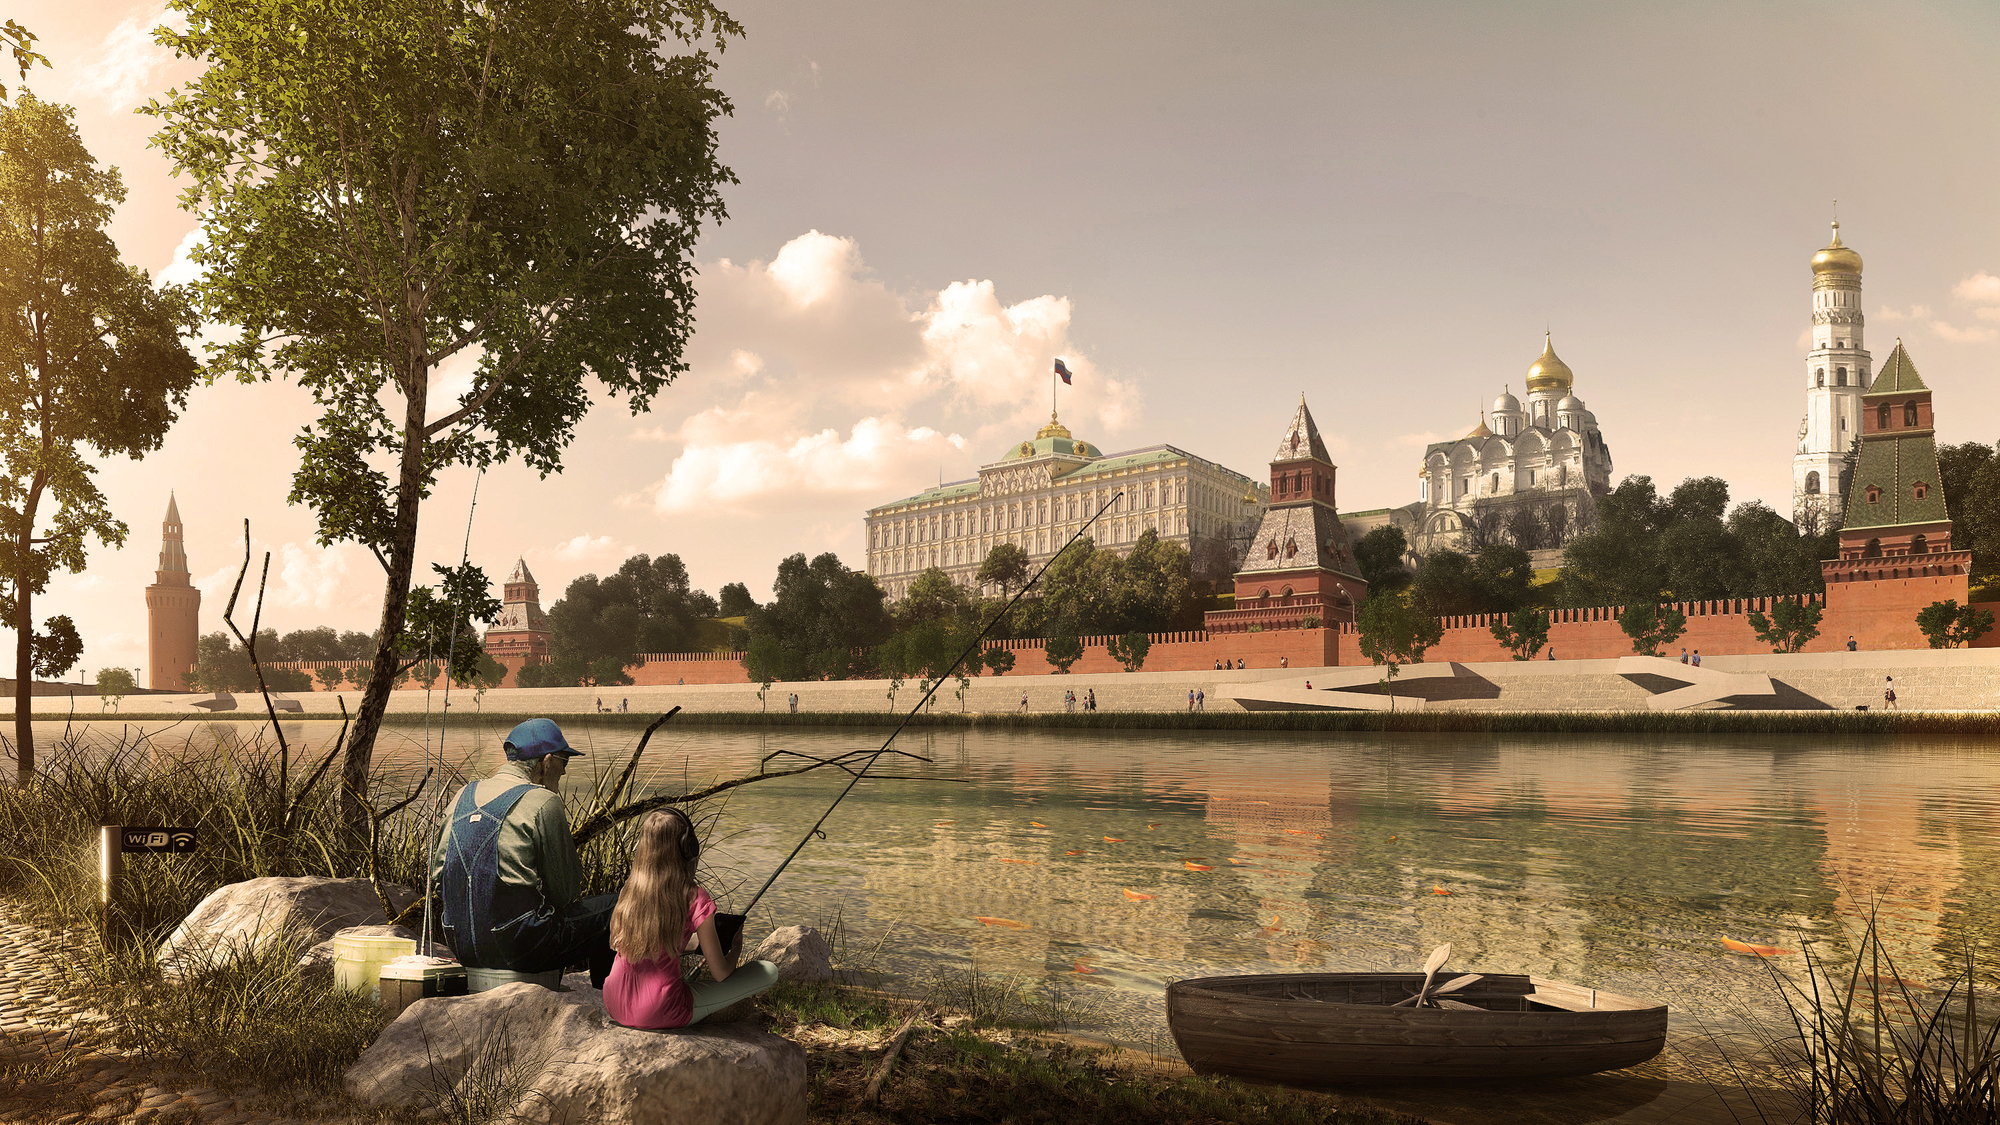 548a36bae58ece0d79000037_project-meganom-wins-contest-to-transform-moscow-riverfront_6-fishing_on_kremlin